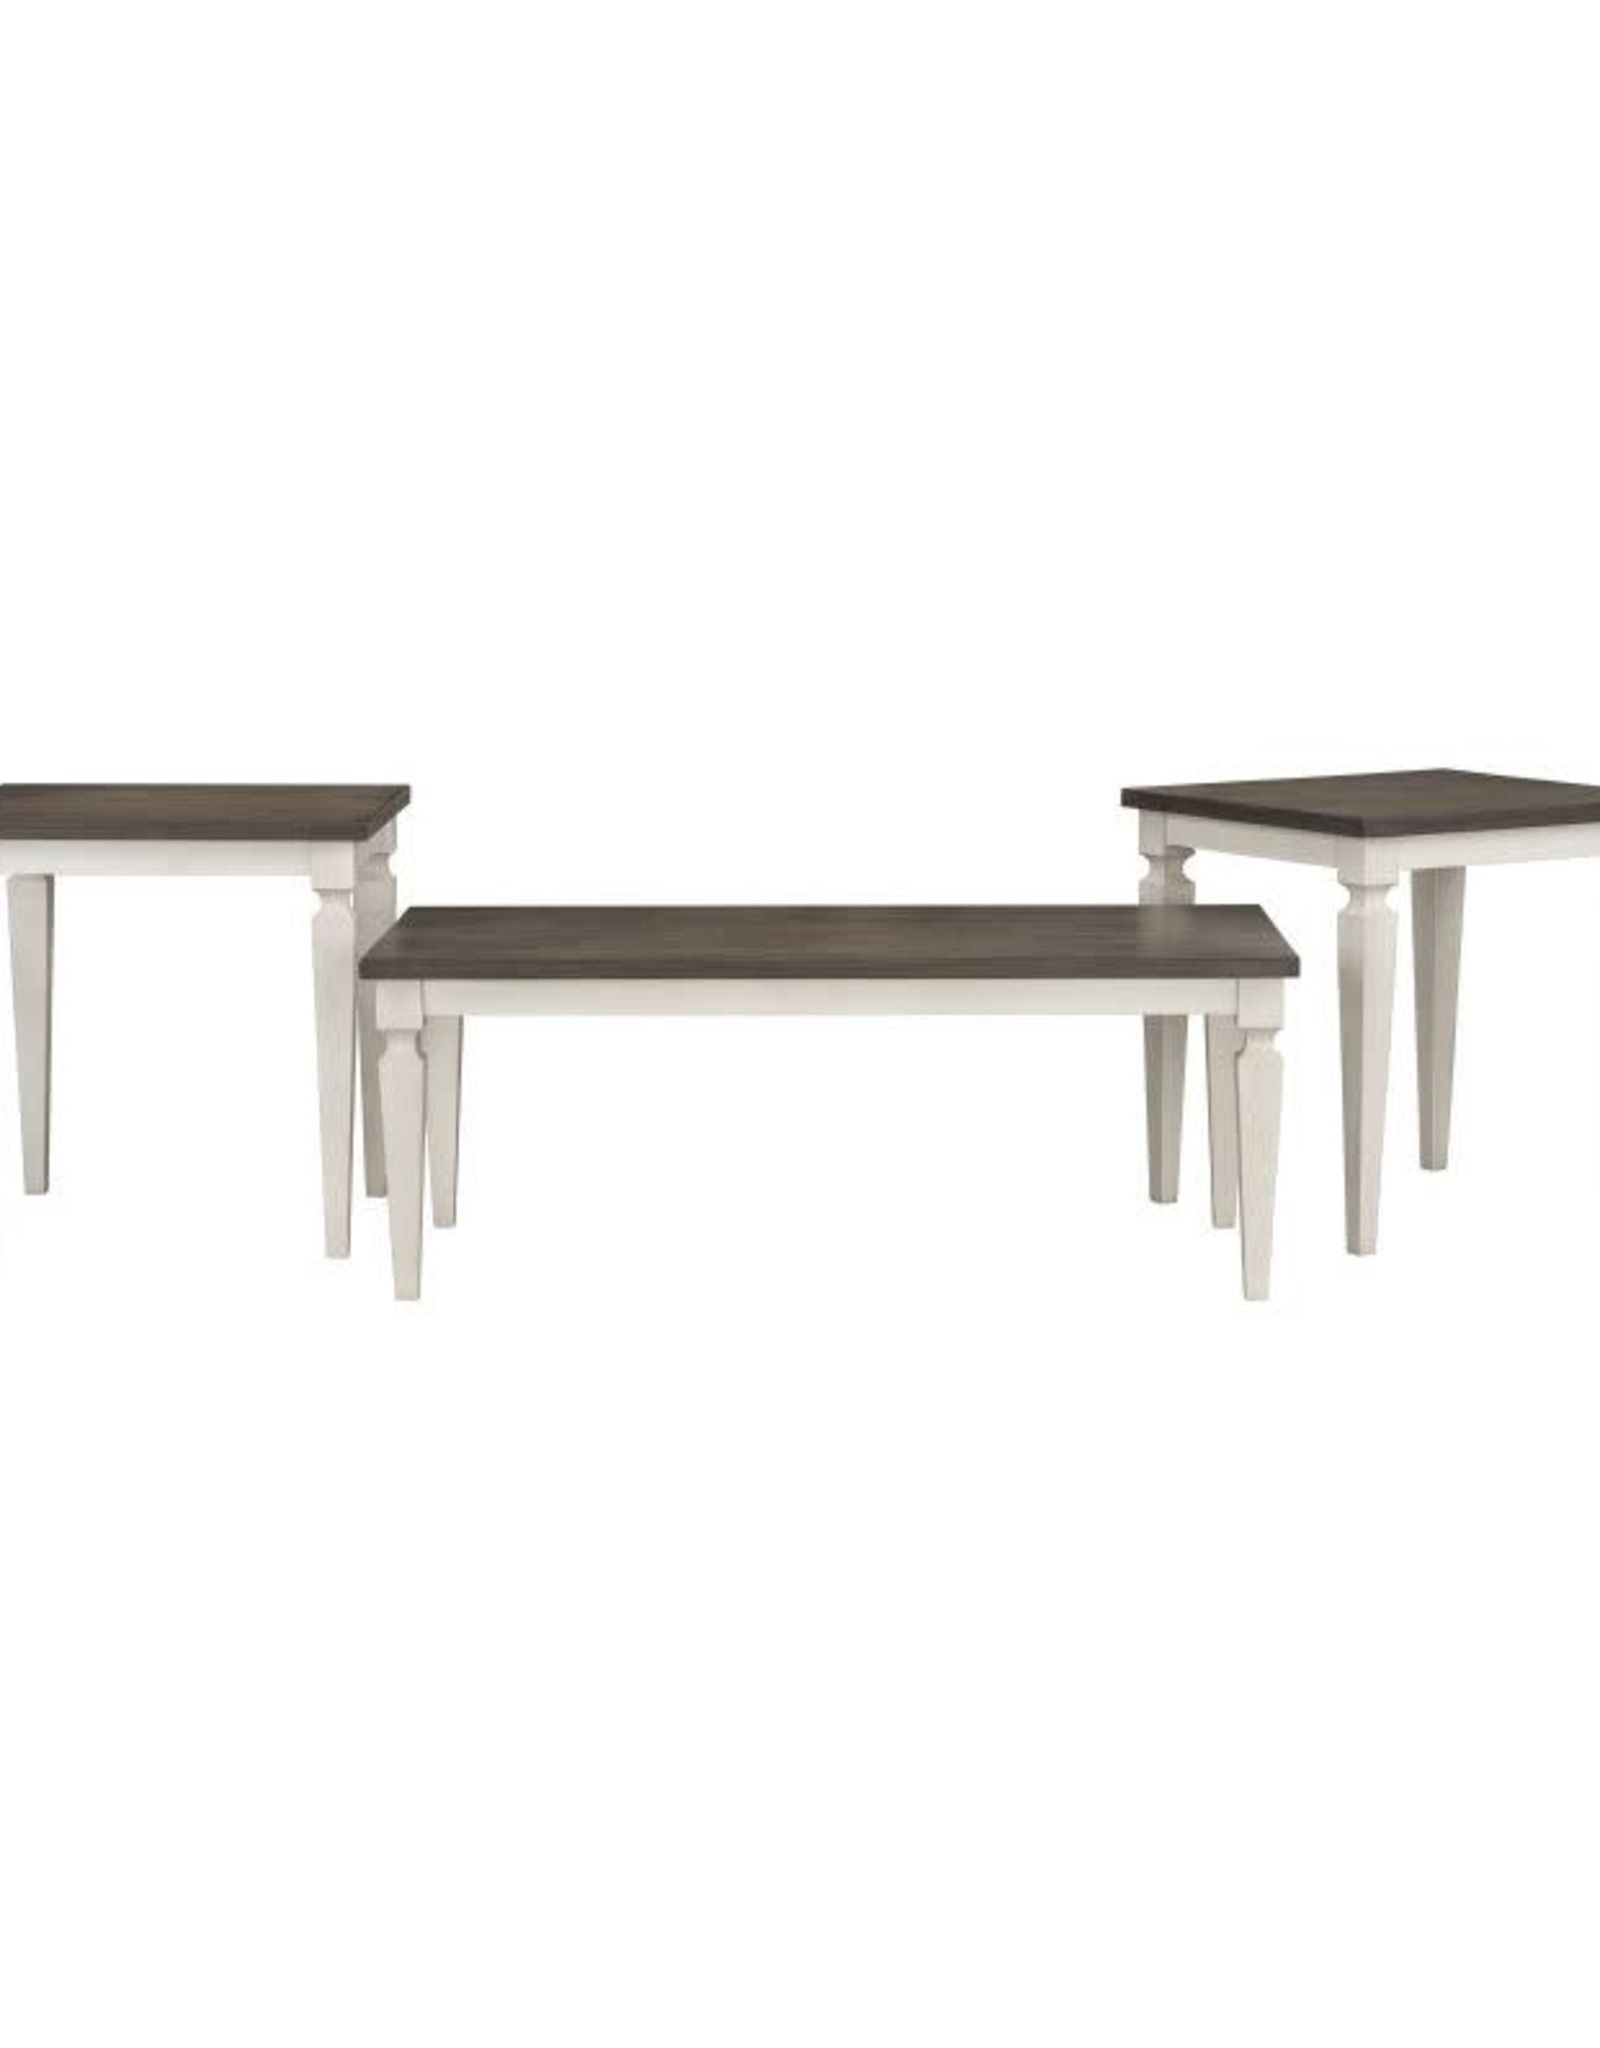 Standard Furniture Grand Bay White / Gray Coffee and matching end table set